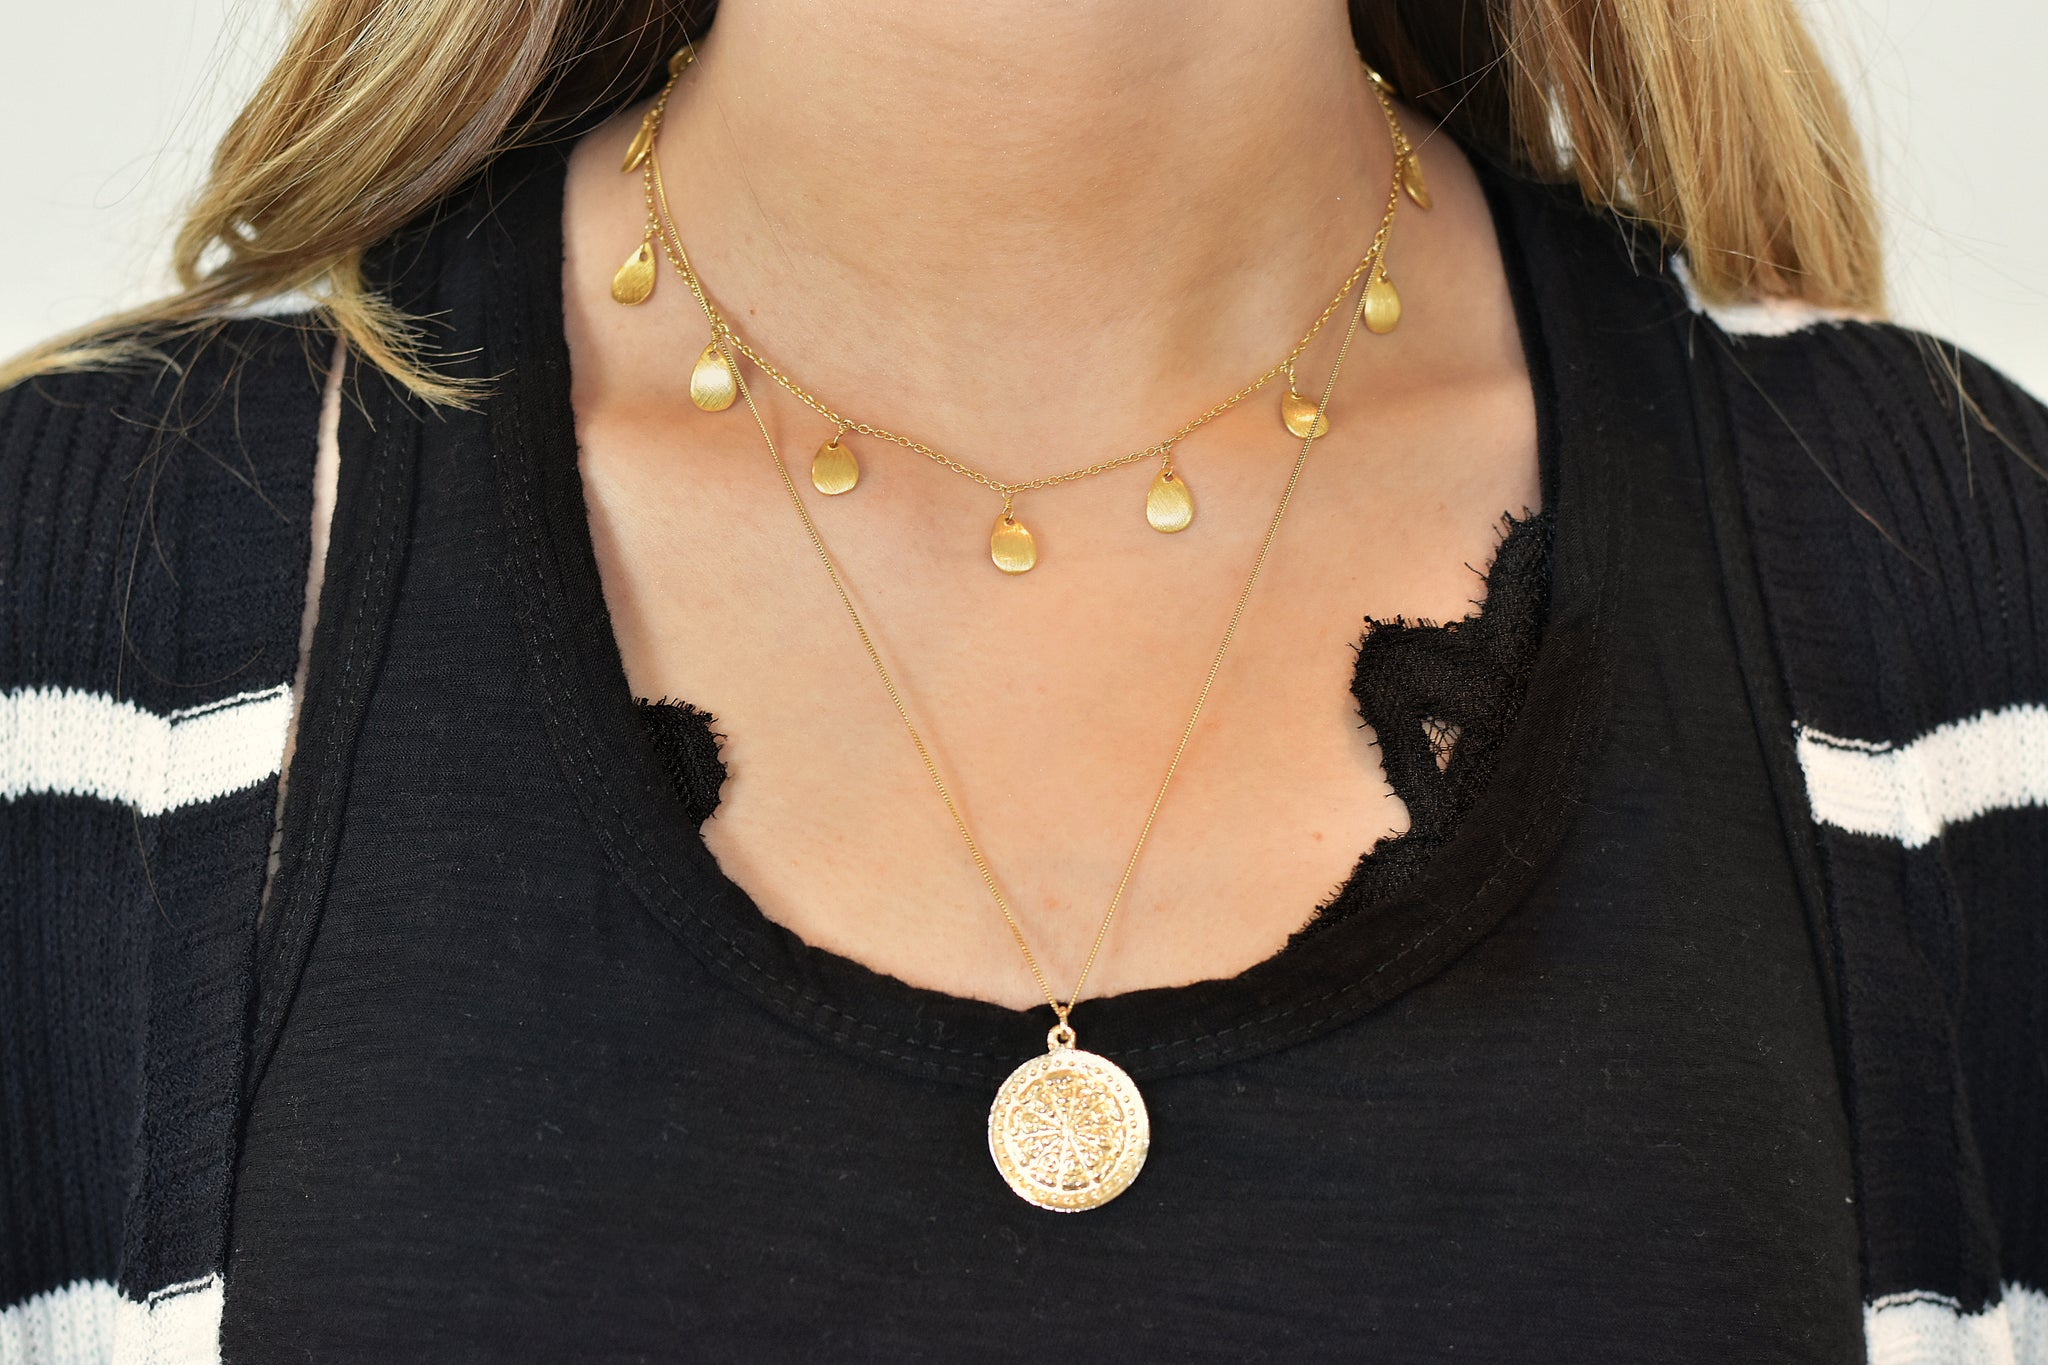 Meghan Bo Designs -The Buddha Wheel Necklace